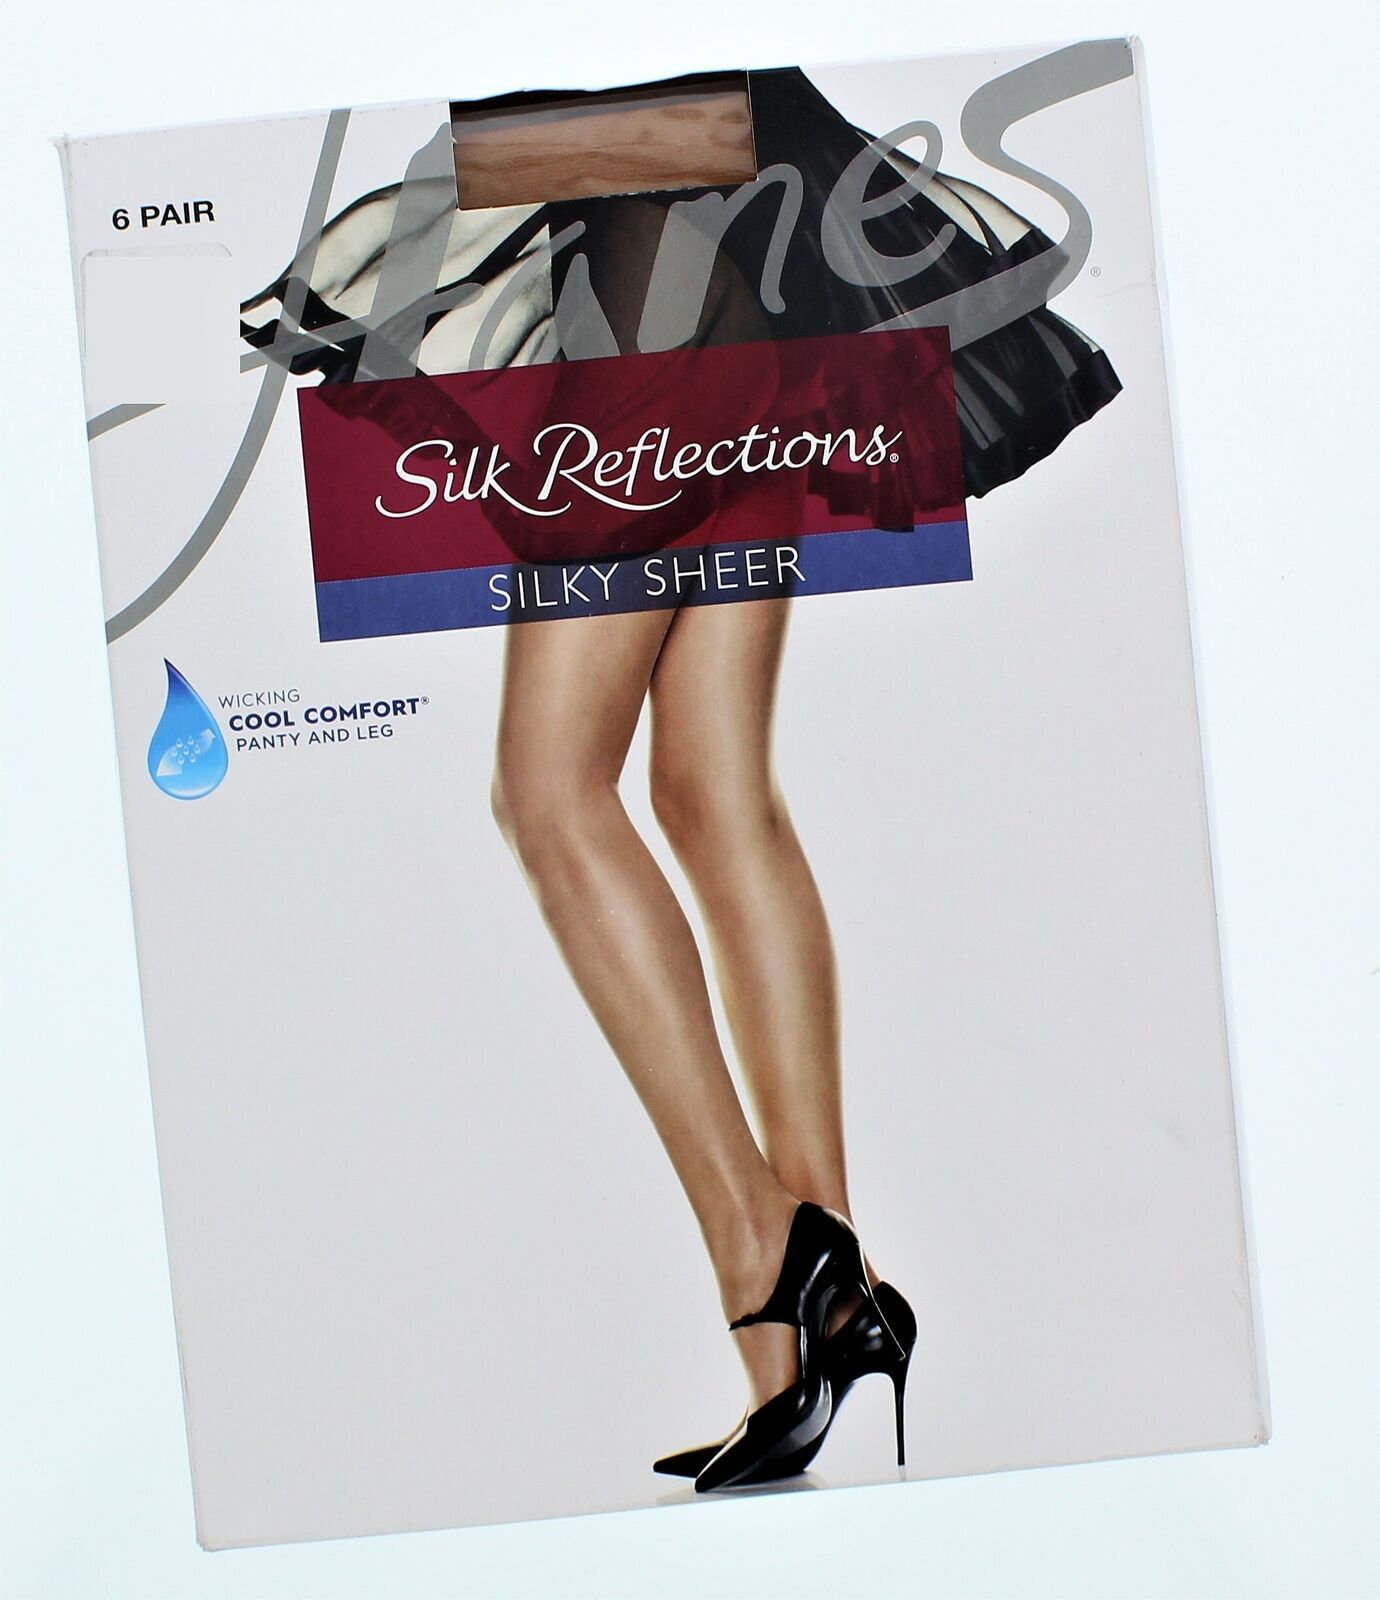 5559704aa4304 Silk Reflections Hosiery Size AB Silky Sheer nzisff1404-Pantyhose & Tights